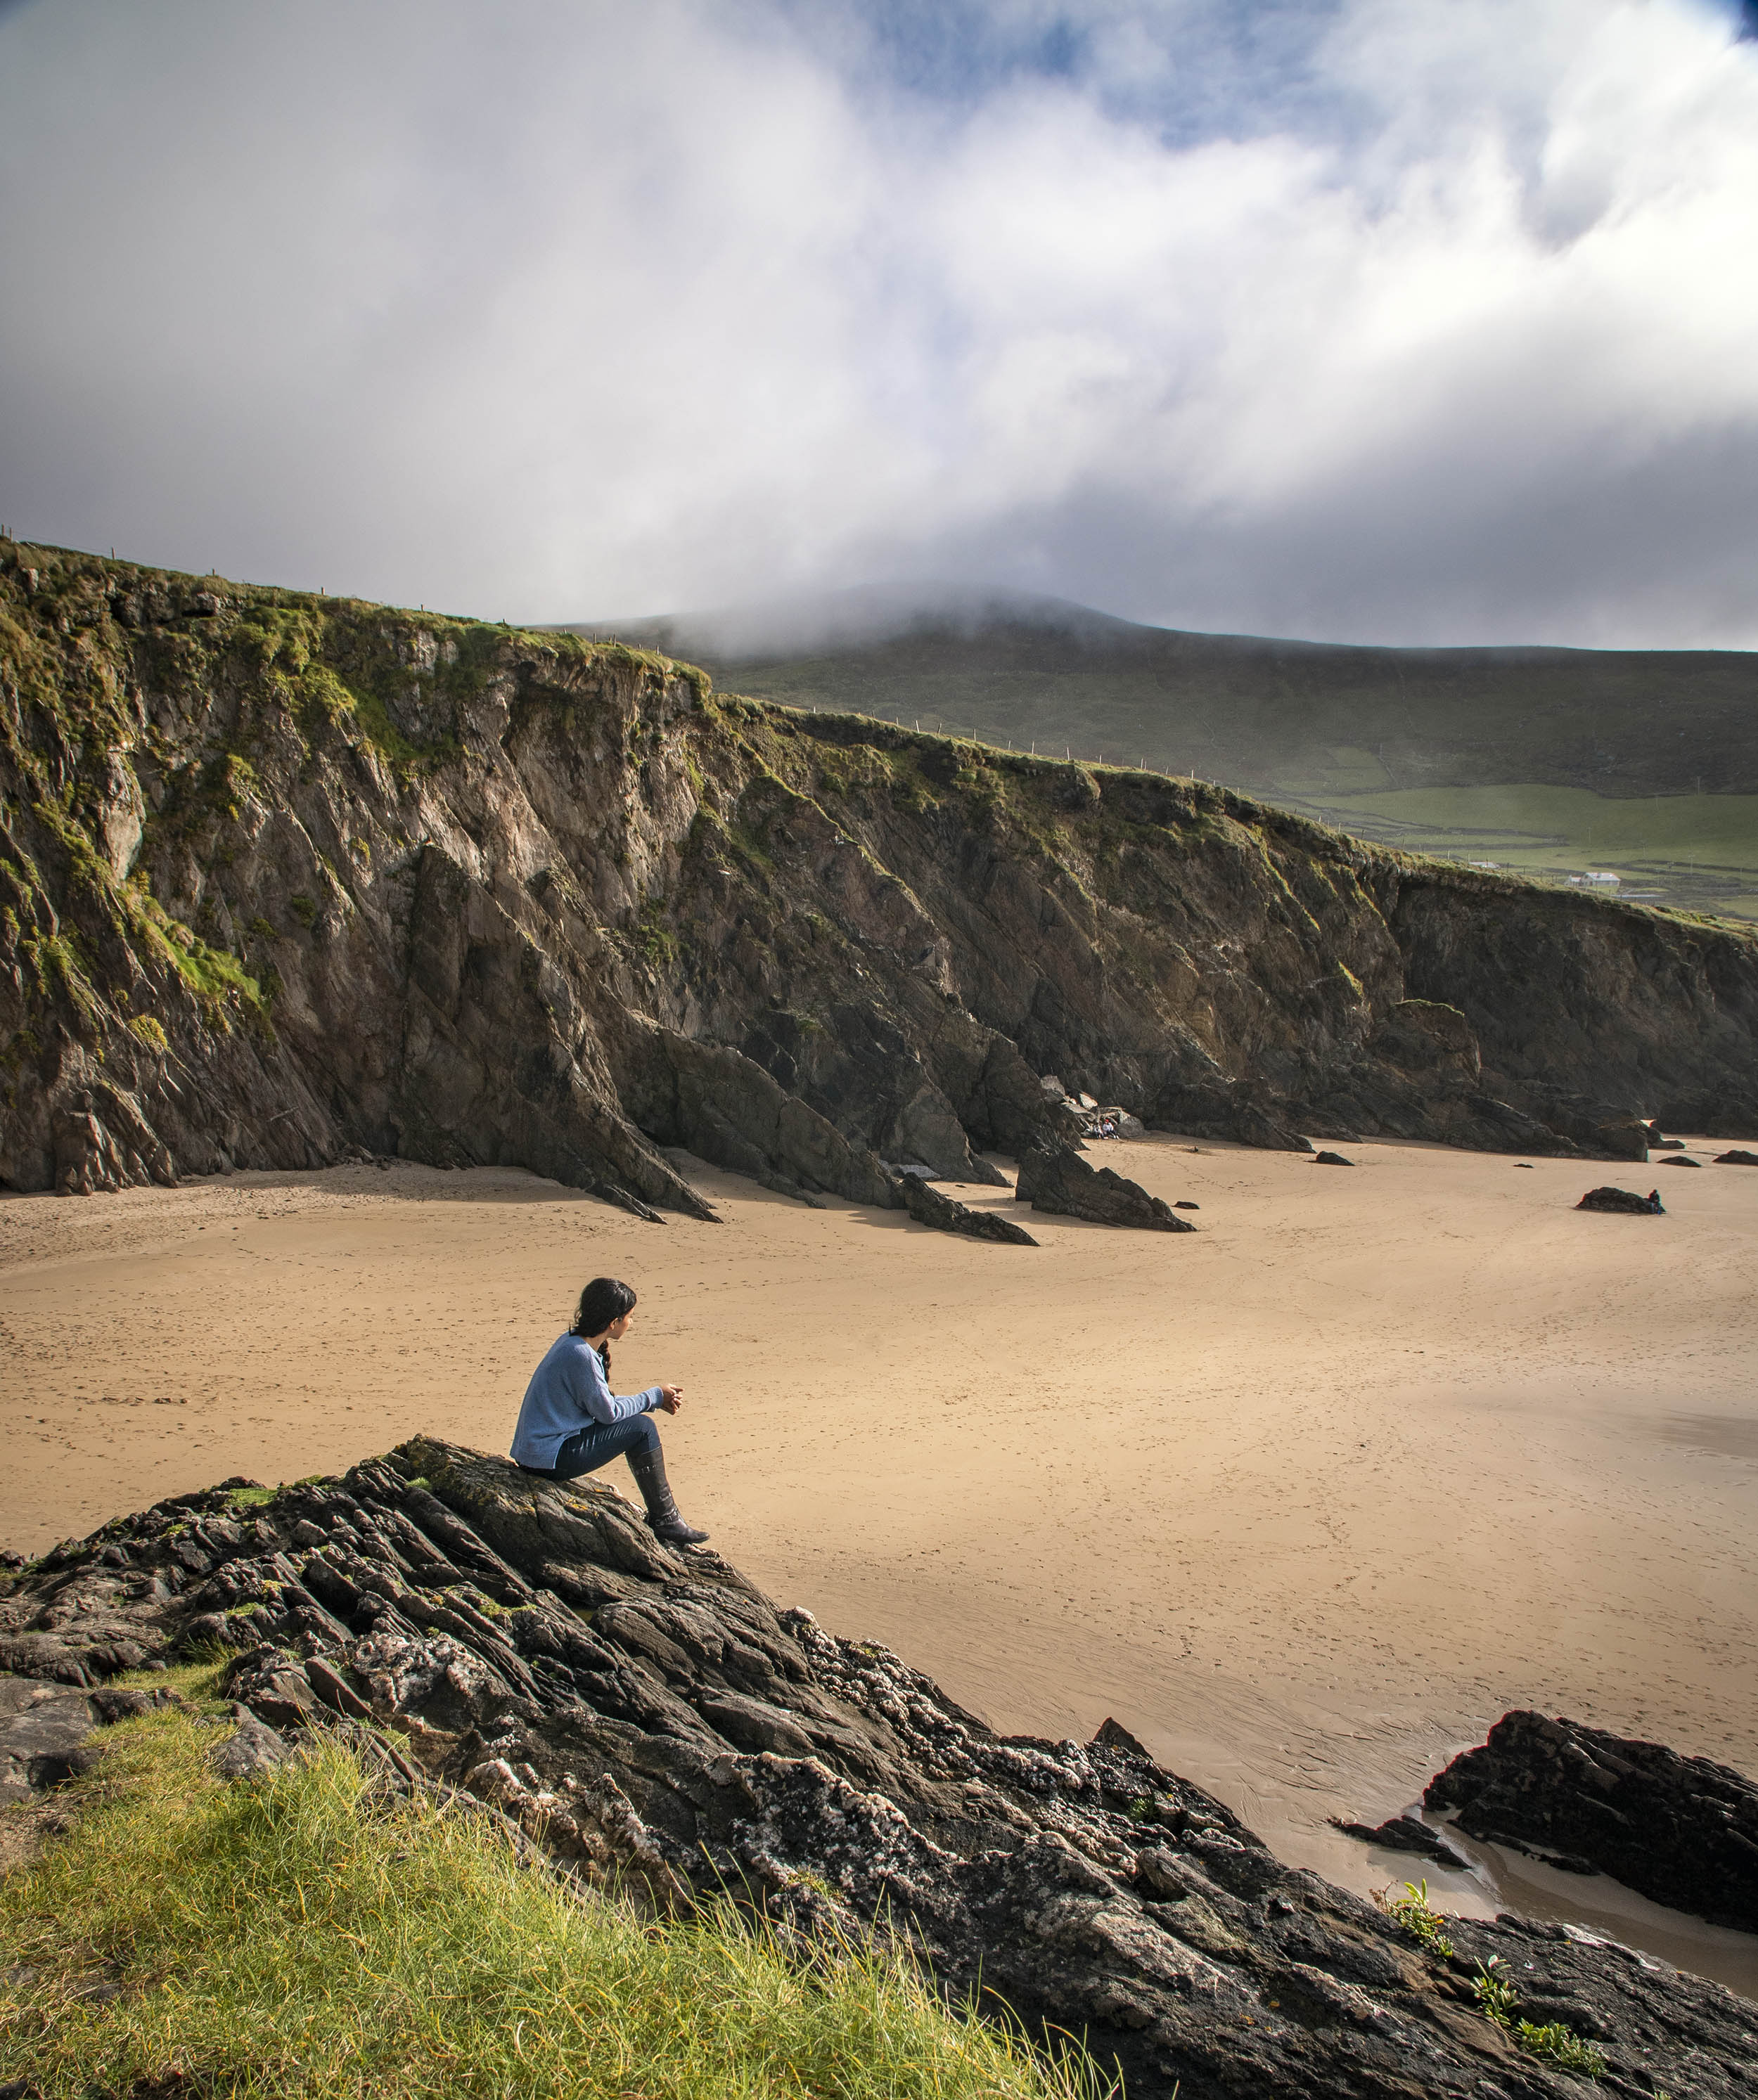 Coumenoole Beach, Dingle Peninsula Ireland